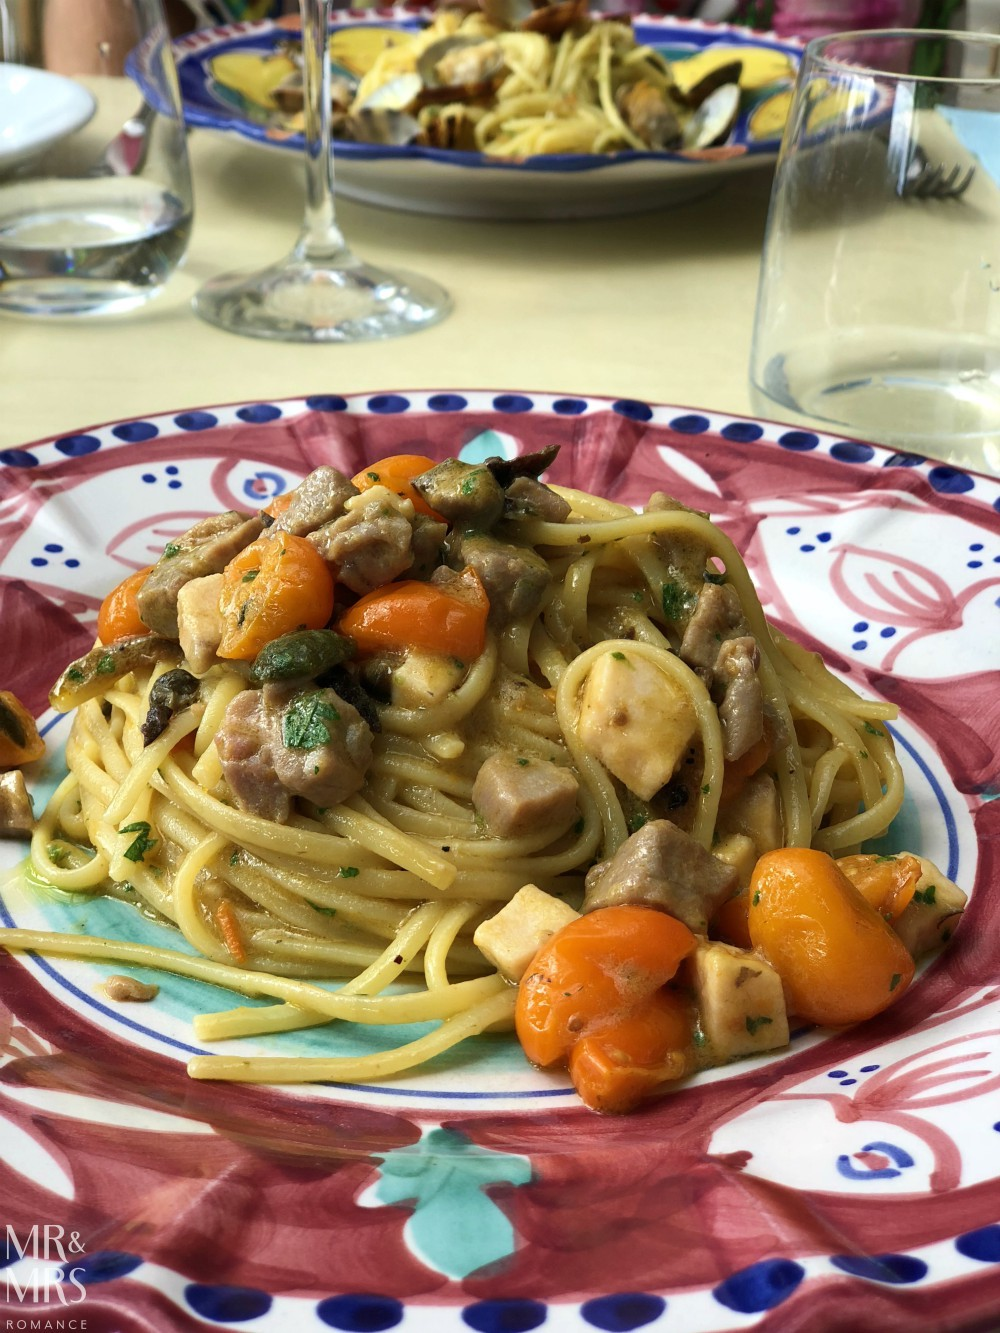 Food to eat in Naples - spaghetti alla pescatora